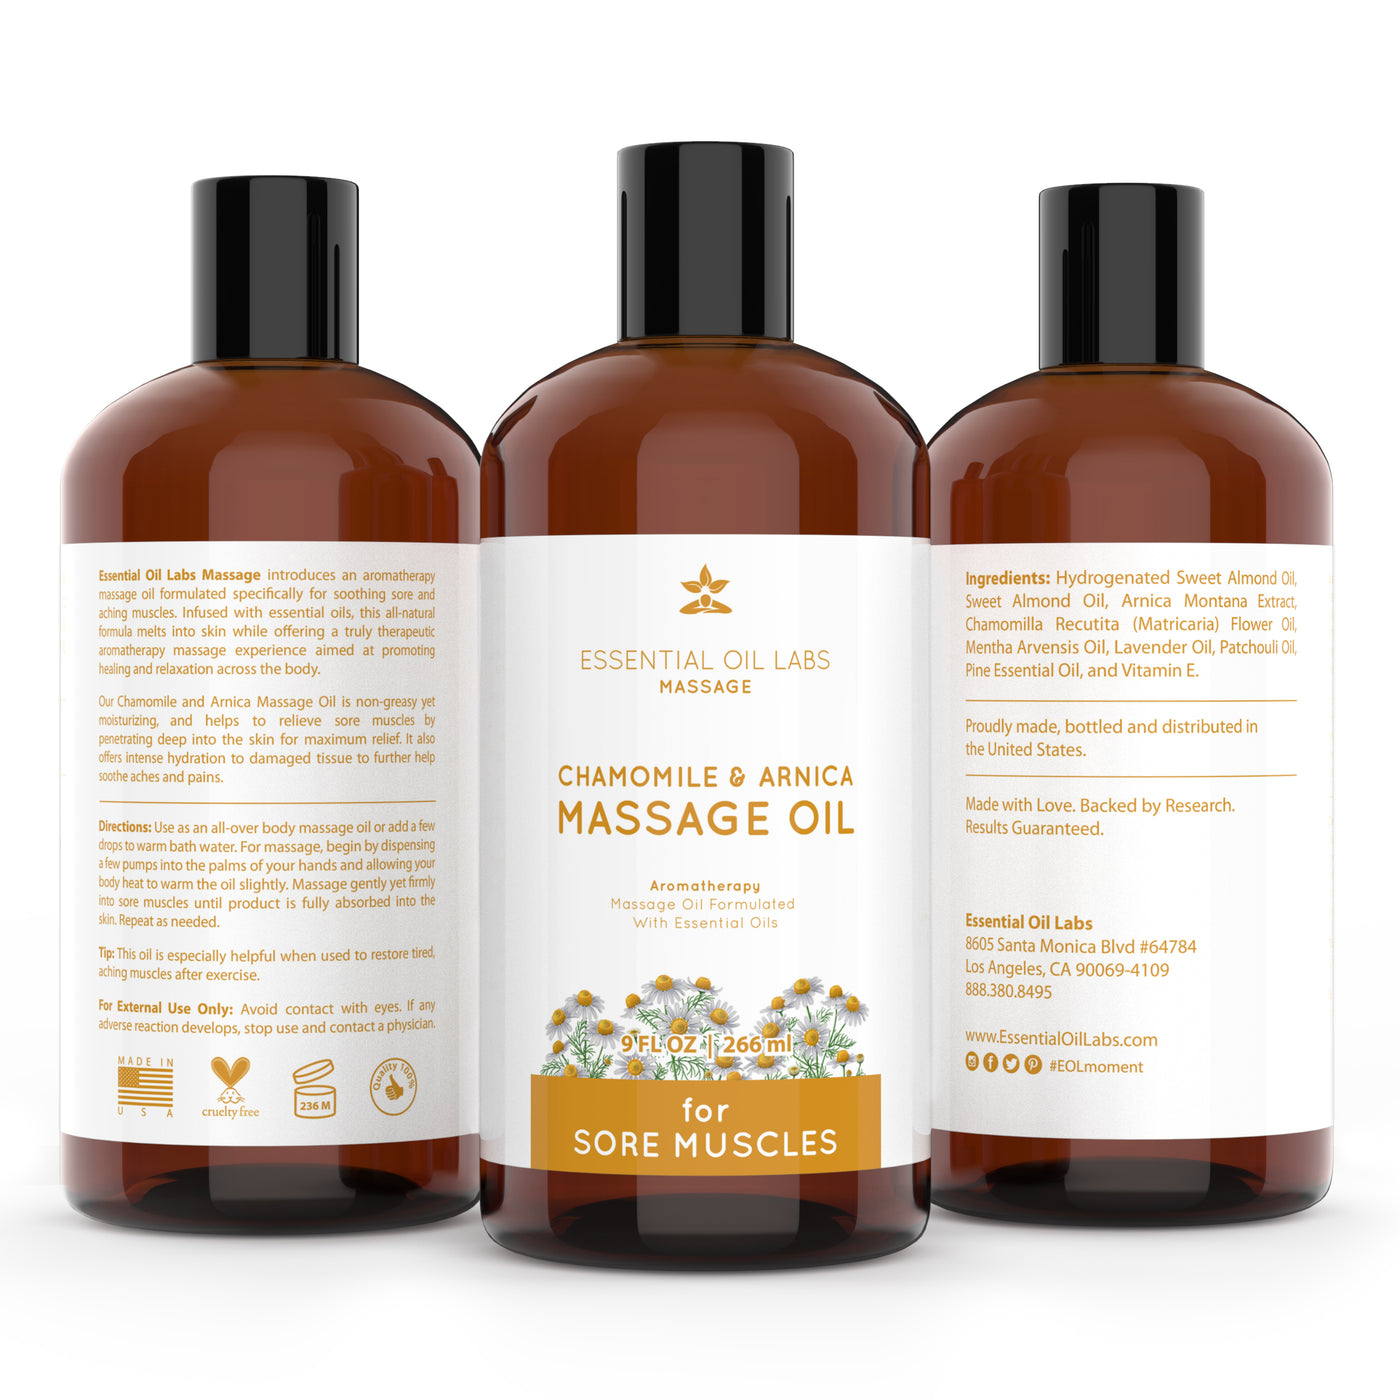 Chamomile & Arnica Massage Oil, 9 oz.